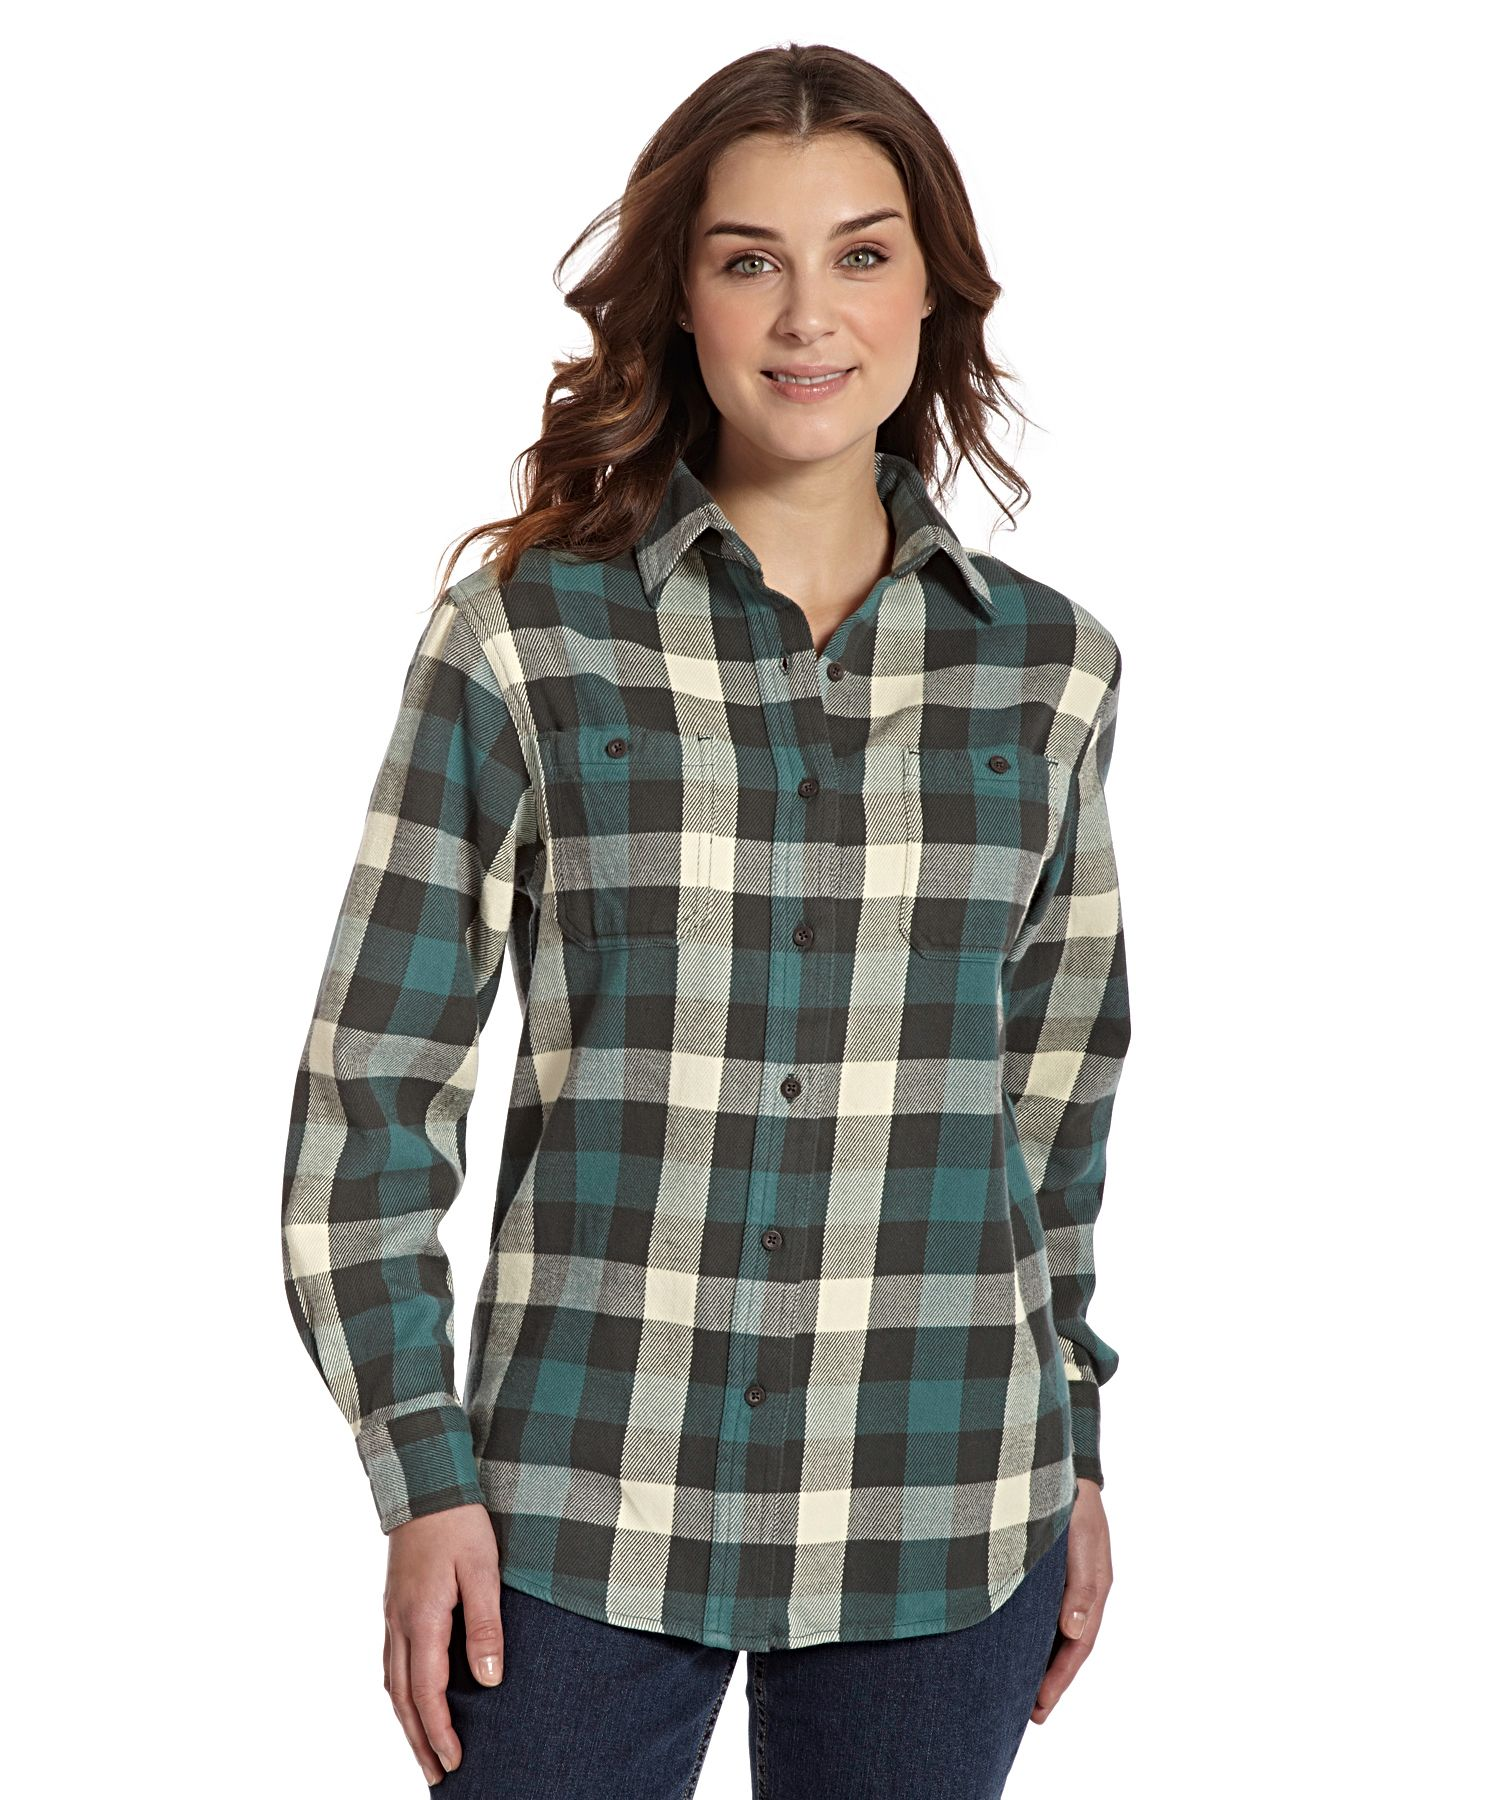 Flannel jacket with wool lining  Womenus Buffalo Check Flannel Shirt  To Wear  Pinterest  Flannels